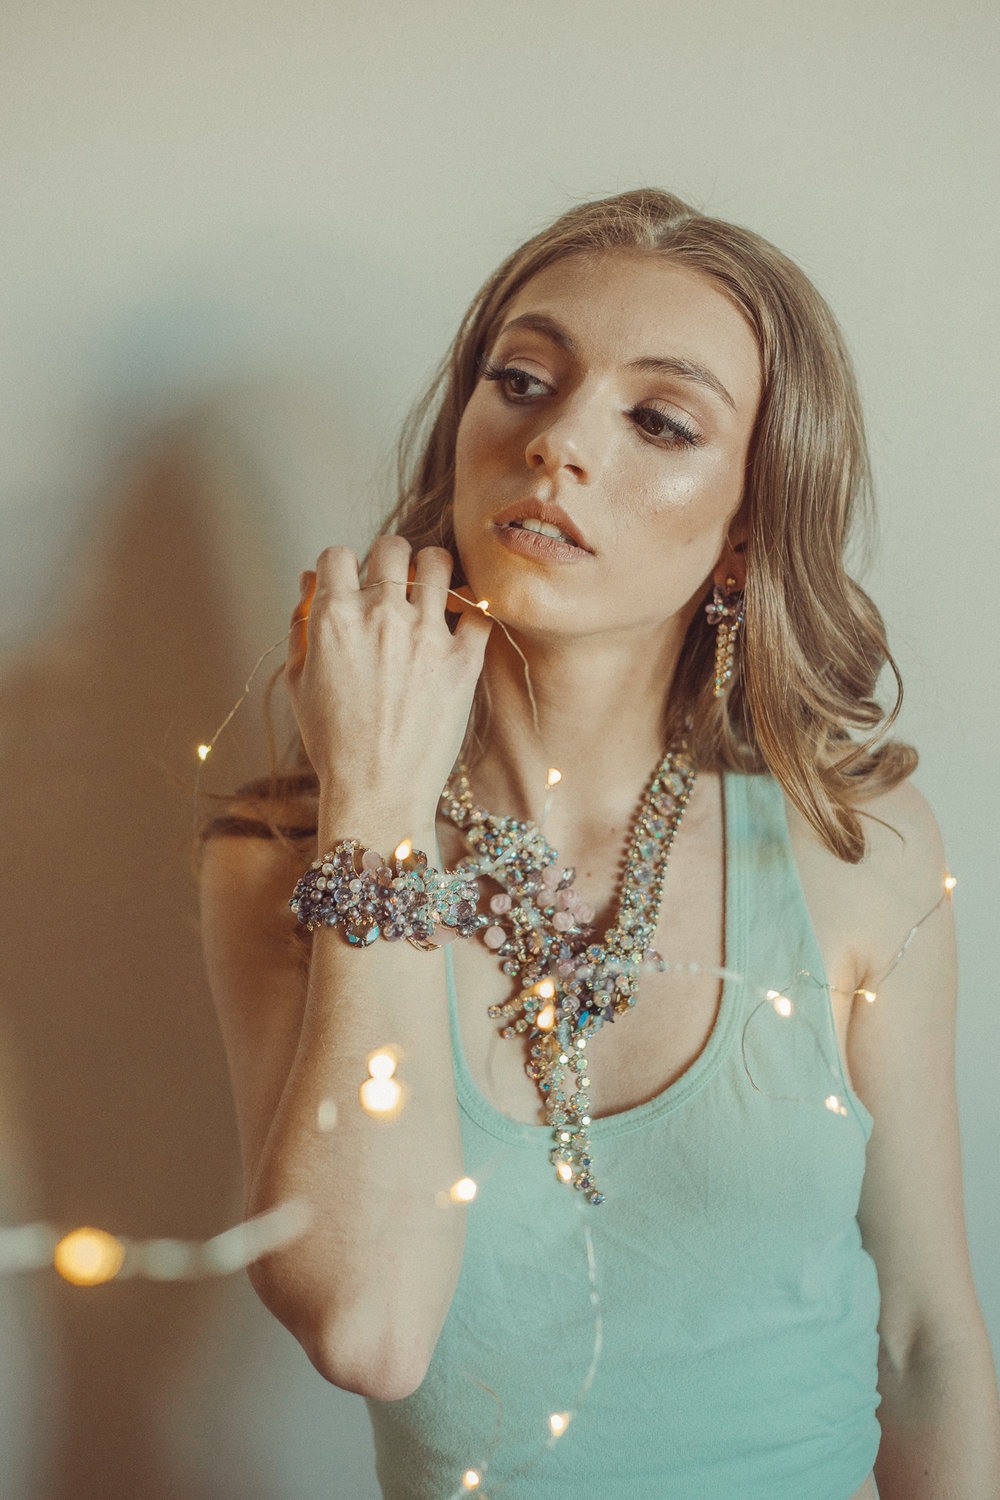 Model wearing statement necklace and cuff